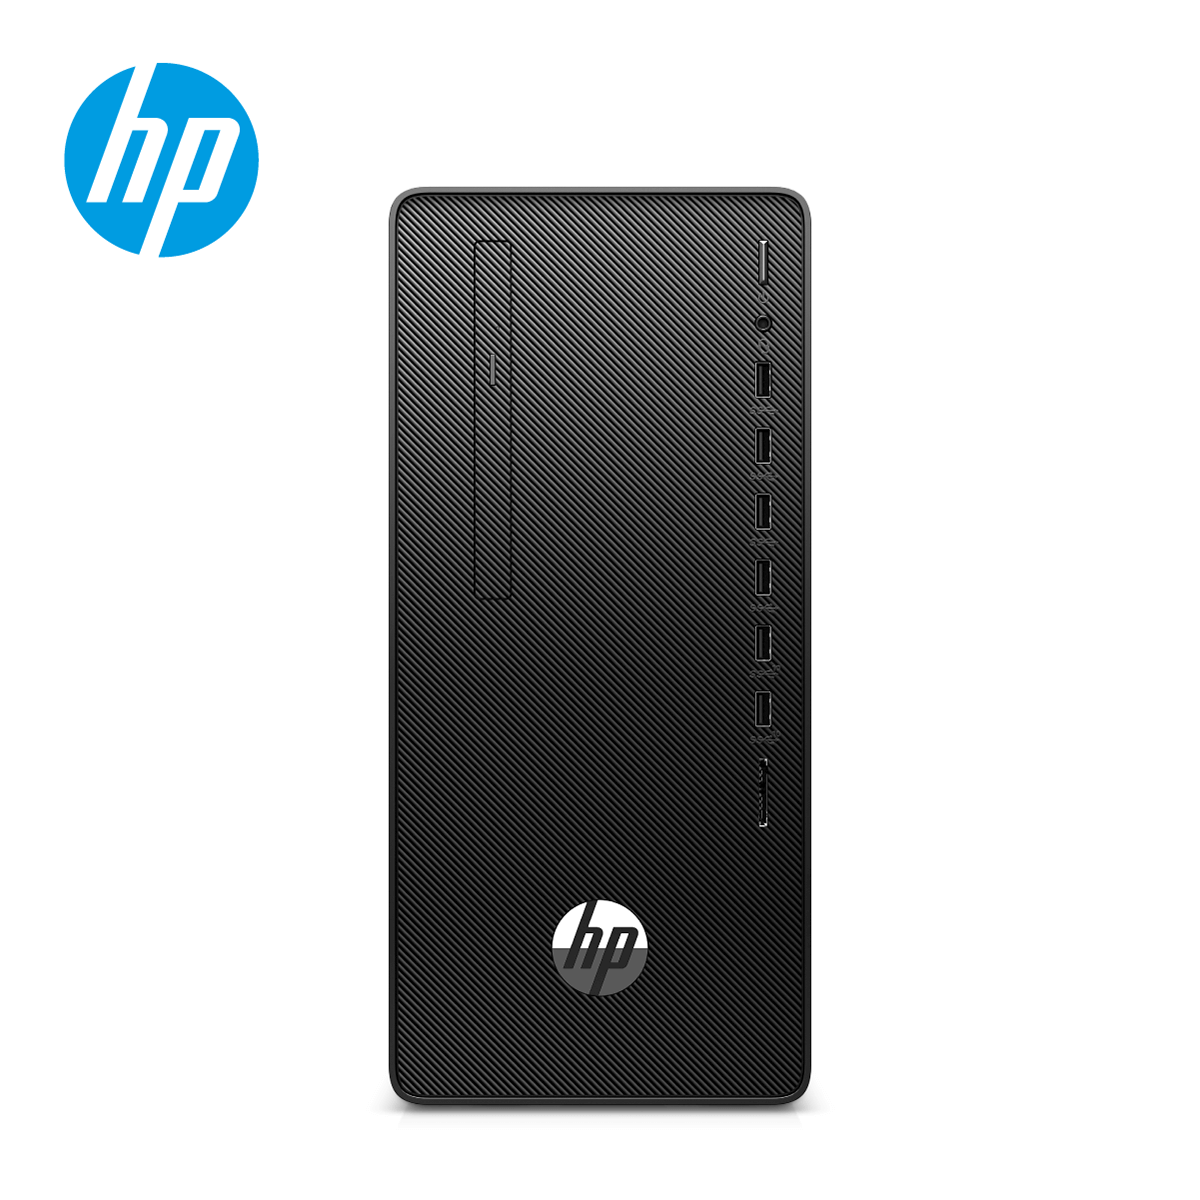 HP 280 Pro G6 Microtower (i3, Black)